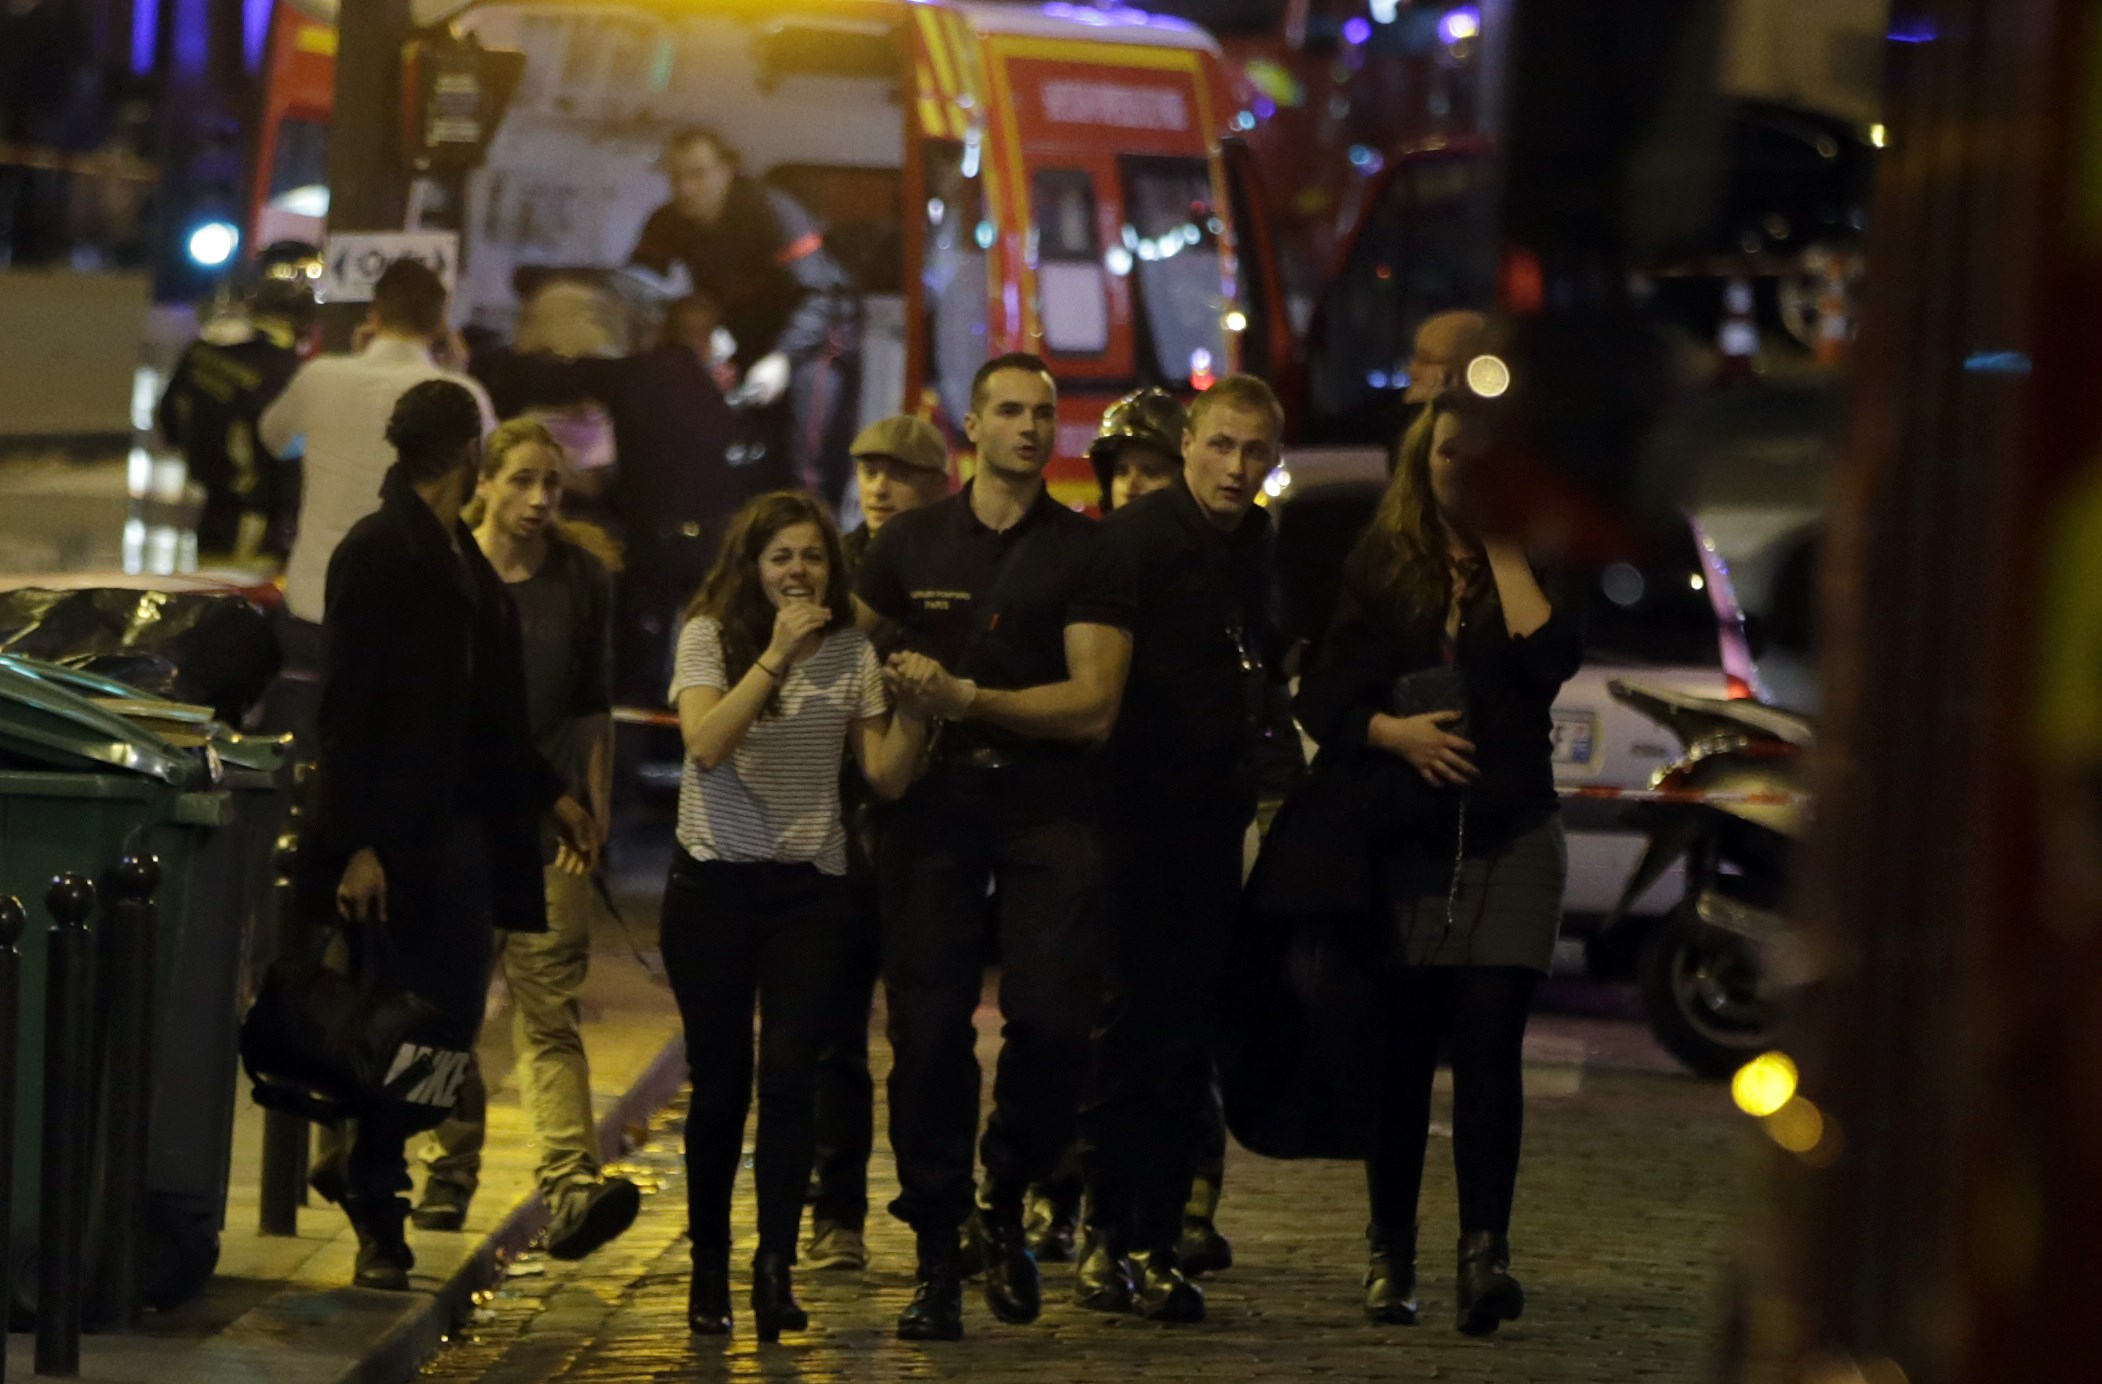 Rescuers evacuate people following an attack in the 10th arrondissement of the French capital Paris. (Getty)